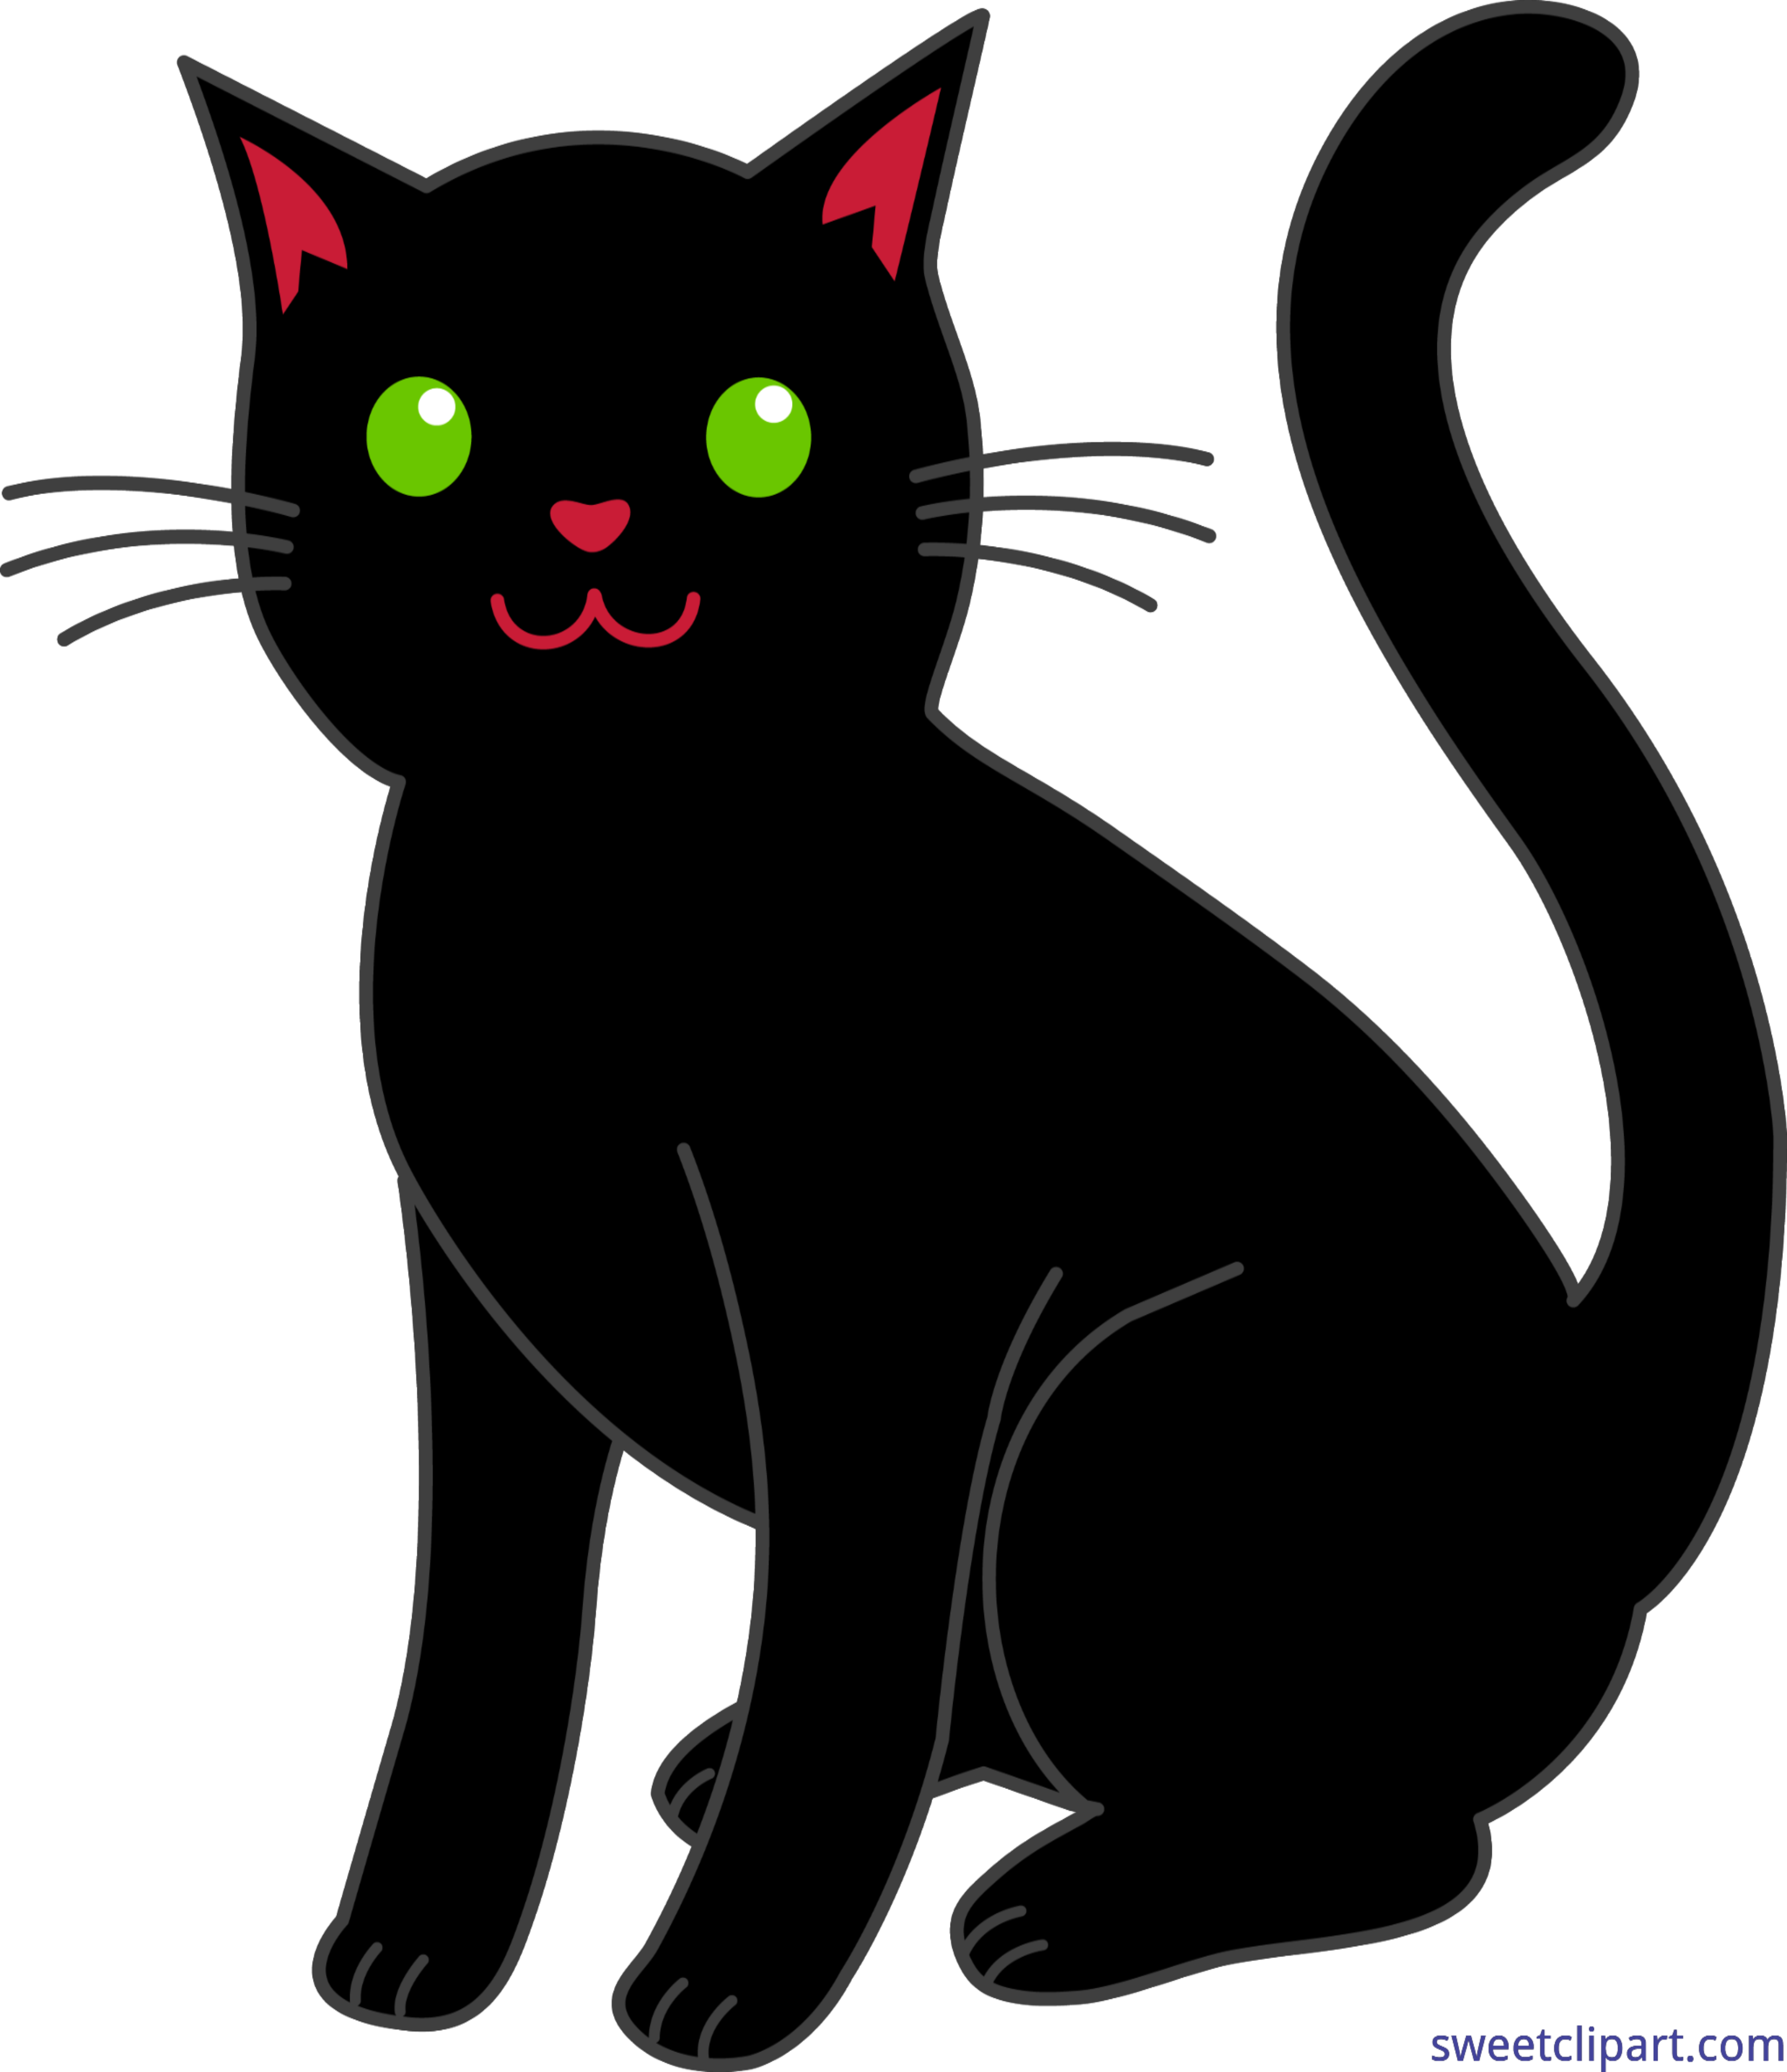 Halloween black cats clipart picture royalty free download Halloween Black Cat Clip Art - Sweet Clip Art picture royalty free download